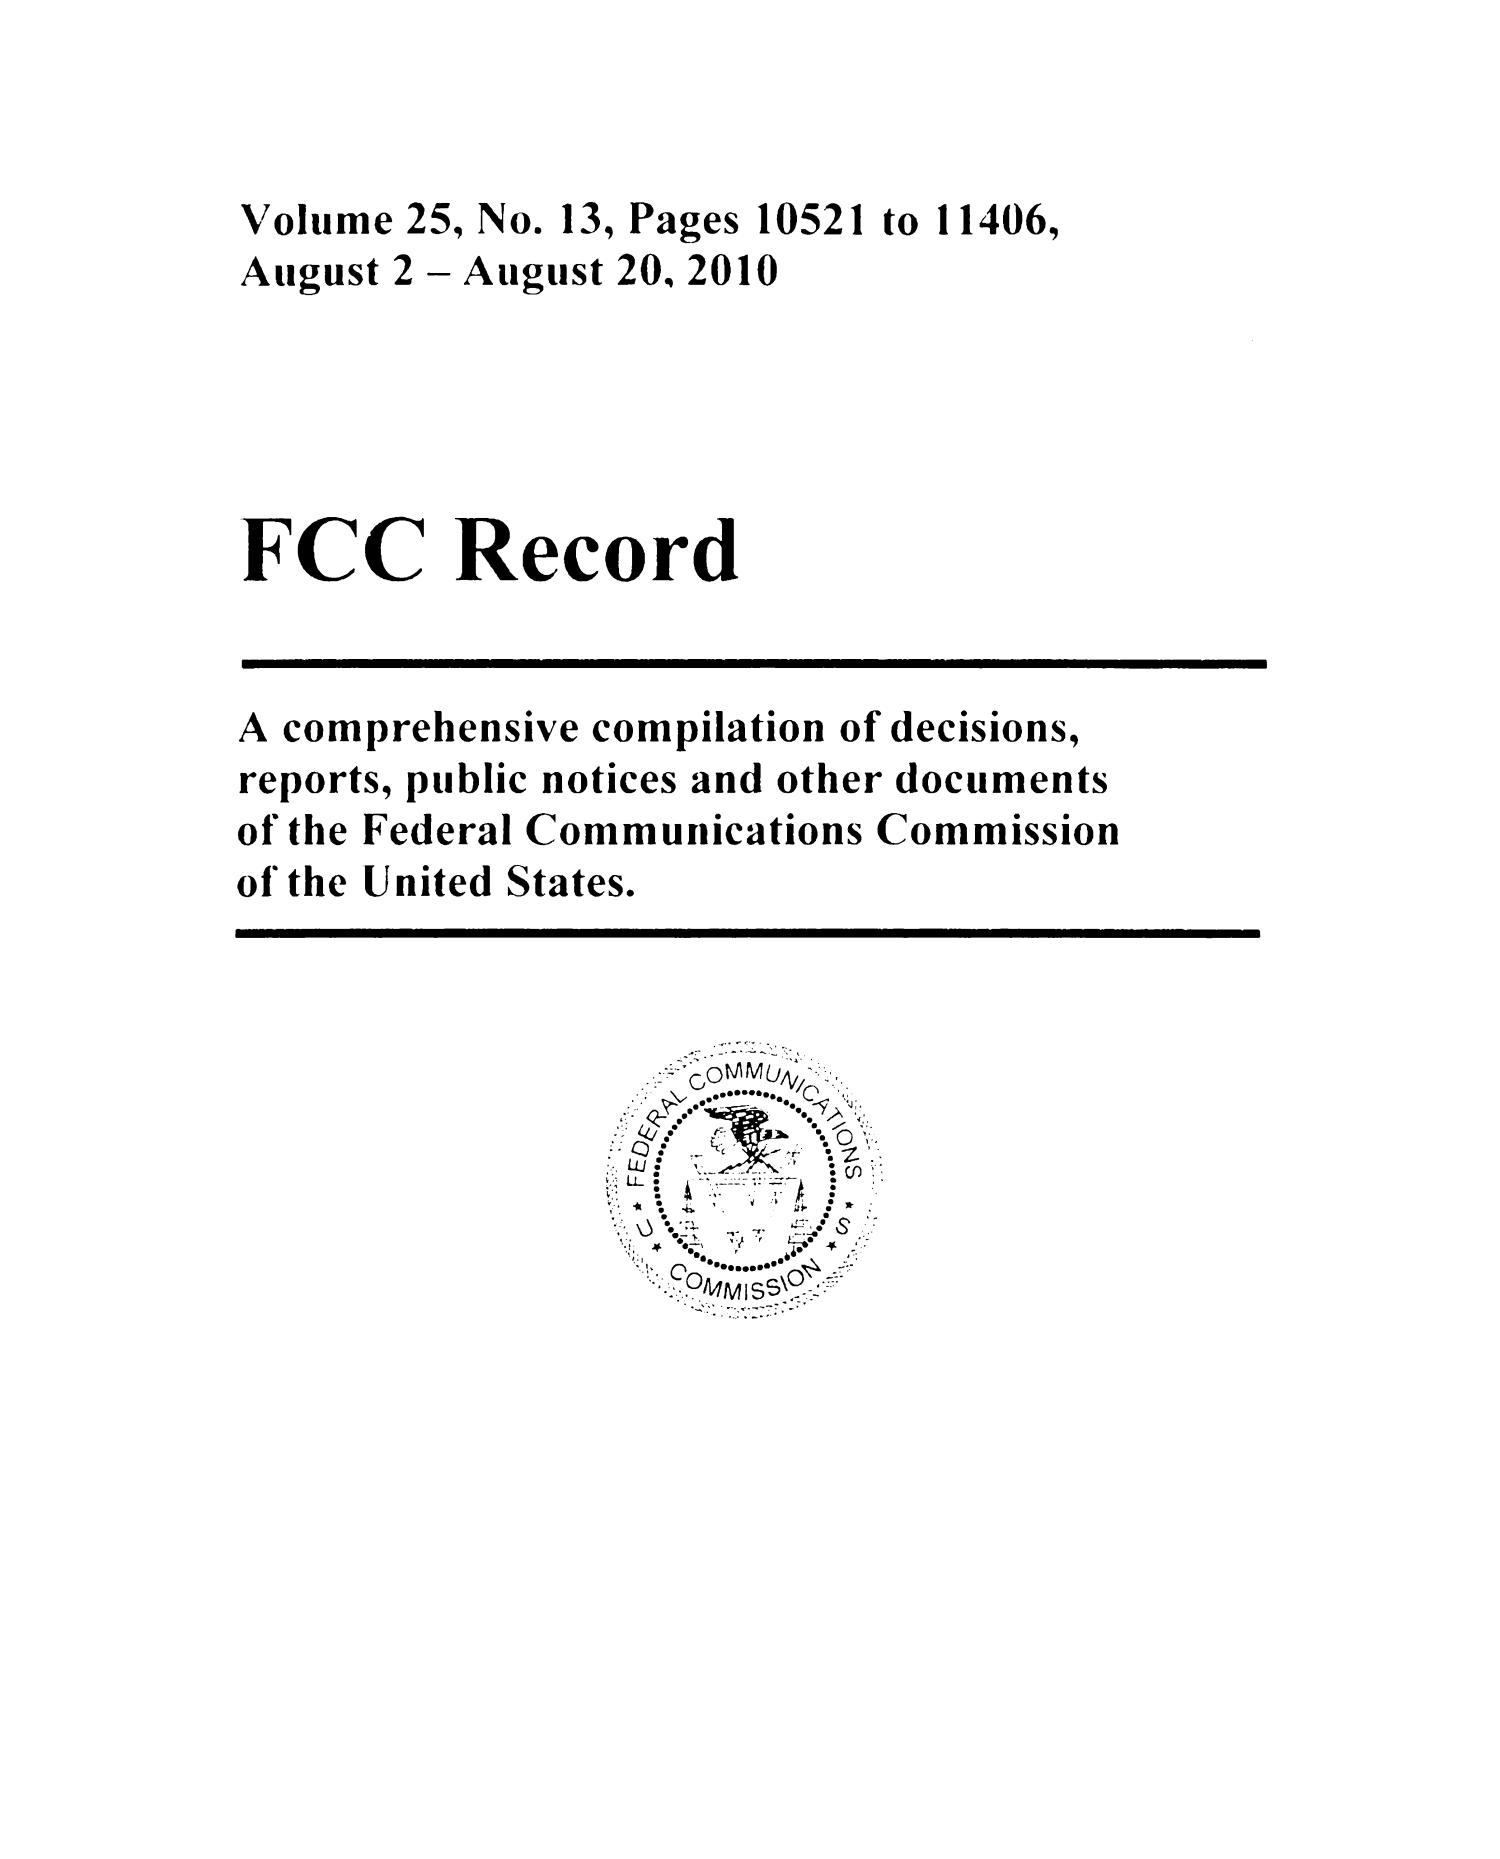 FCC Record, Volume 25, No. 13, Pages 10521 to 11406, August 2 - August 20, 2010                                                                                                      Title Page